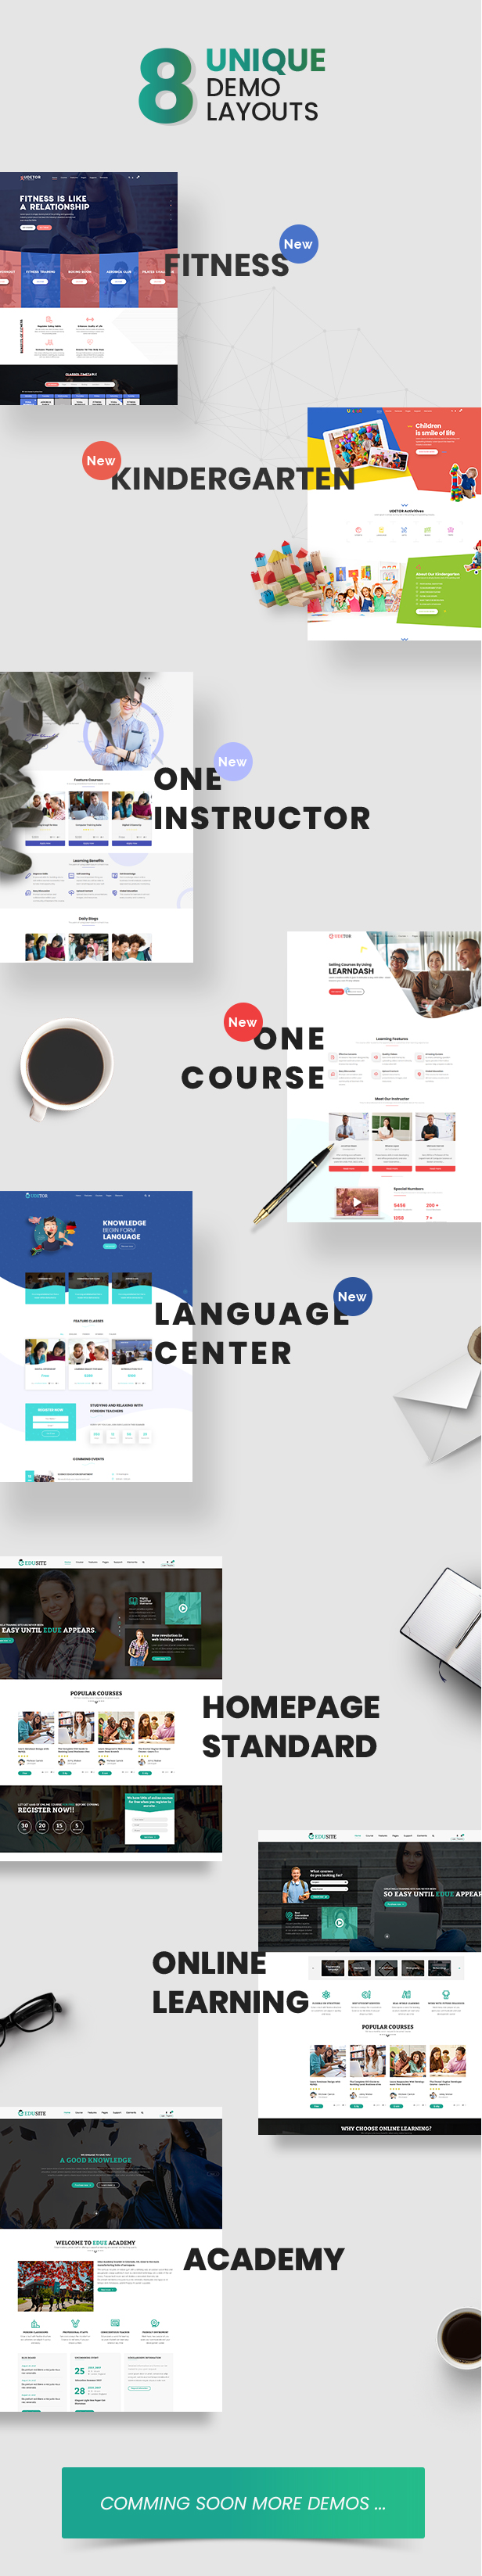 Udetor - LMS Education WordPress Theme - 9